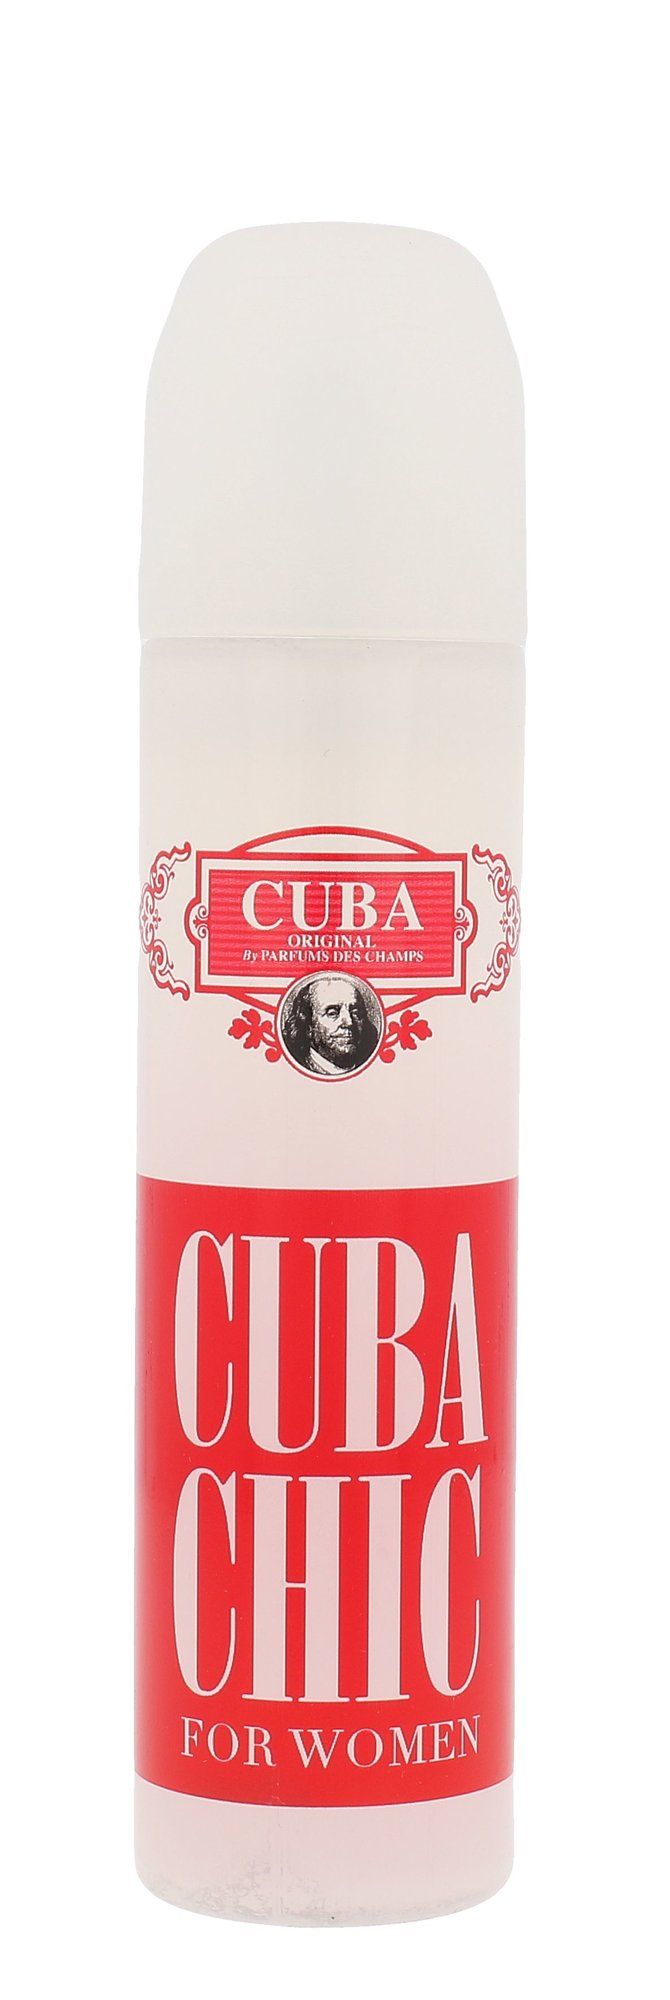 Cuba Cuba Chic For Women EDP 100ml